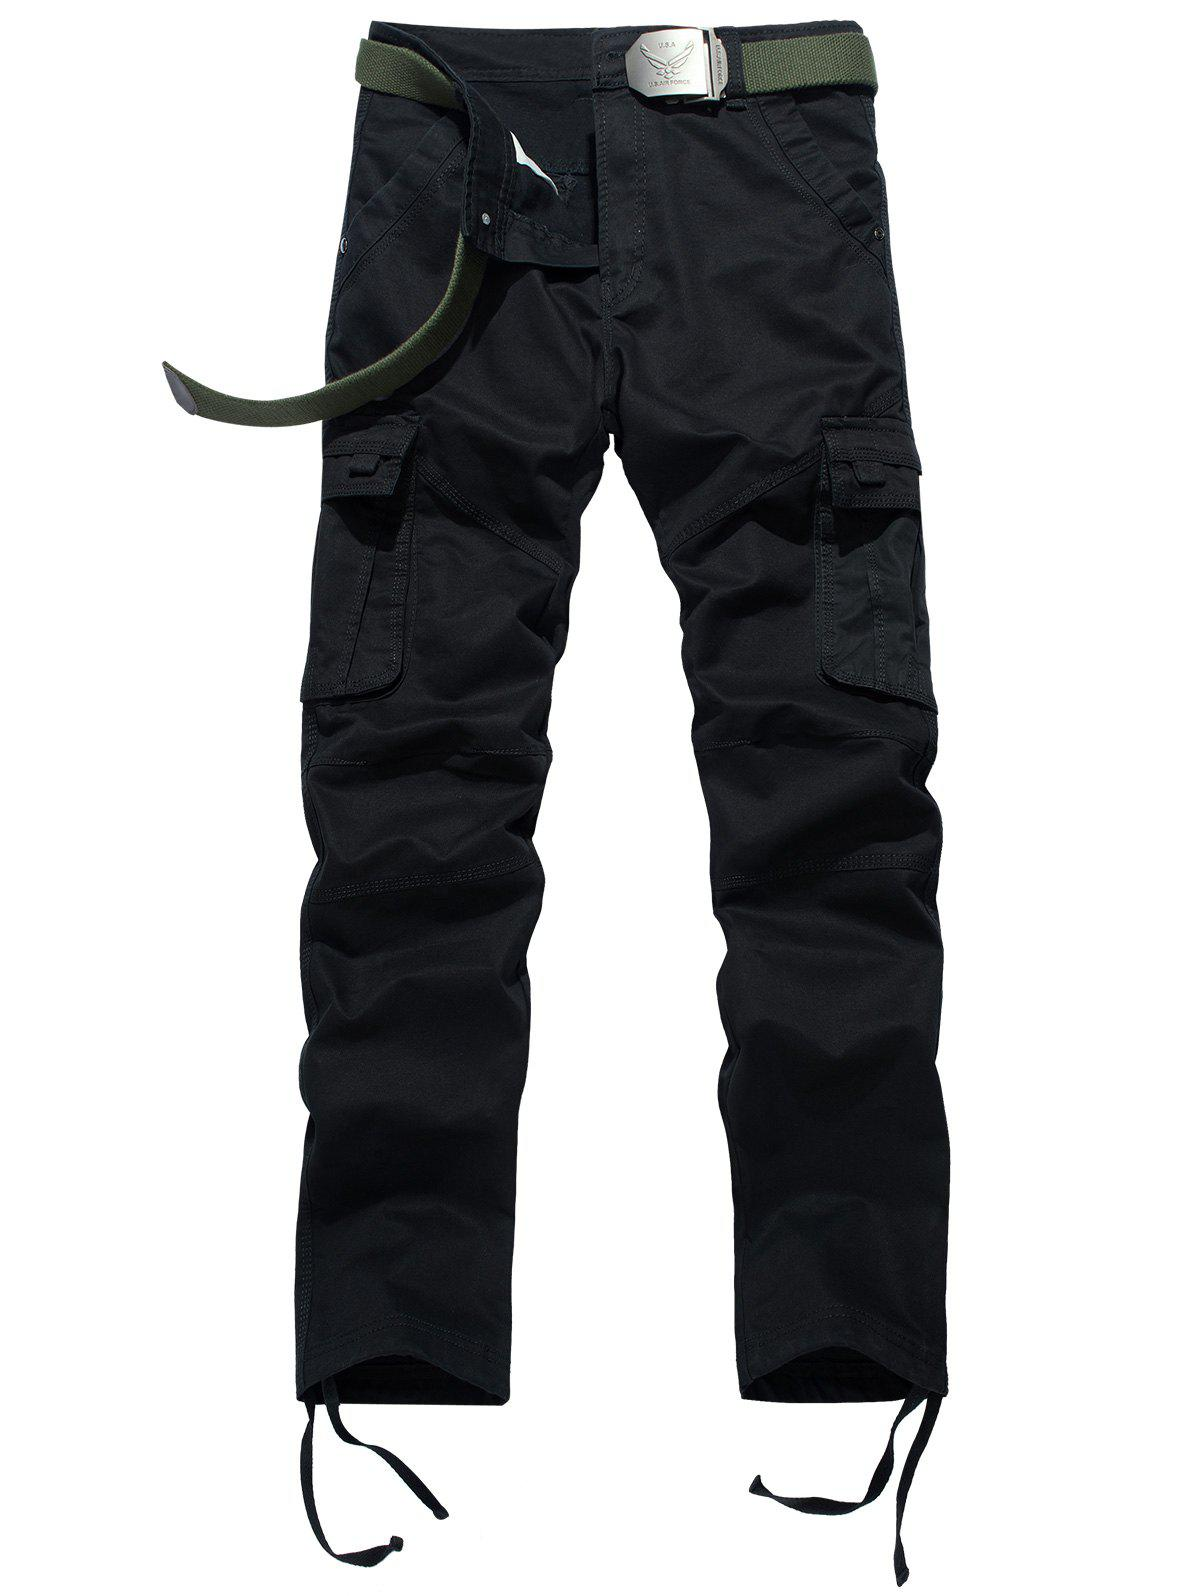 Drawstring Feet Pockets Cargo Pants - BLACK 32